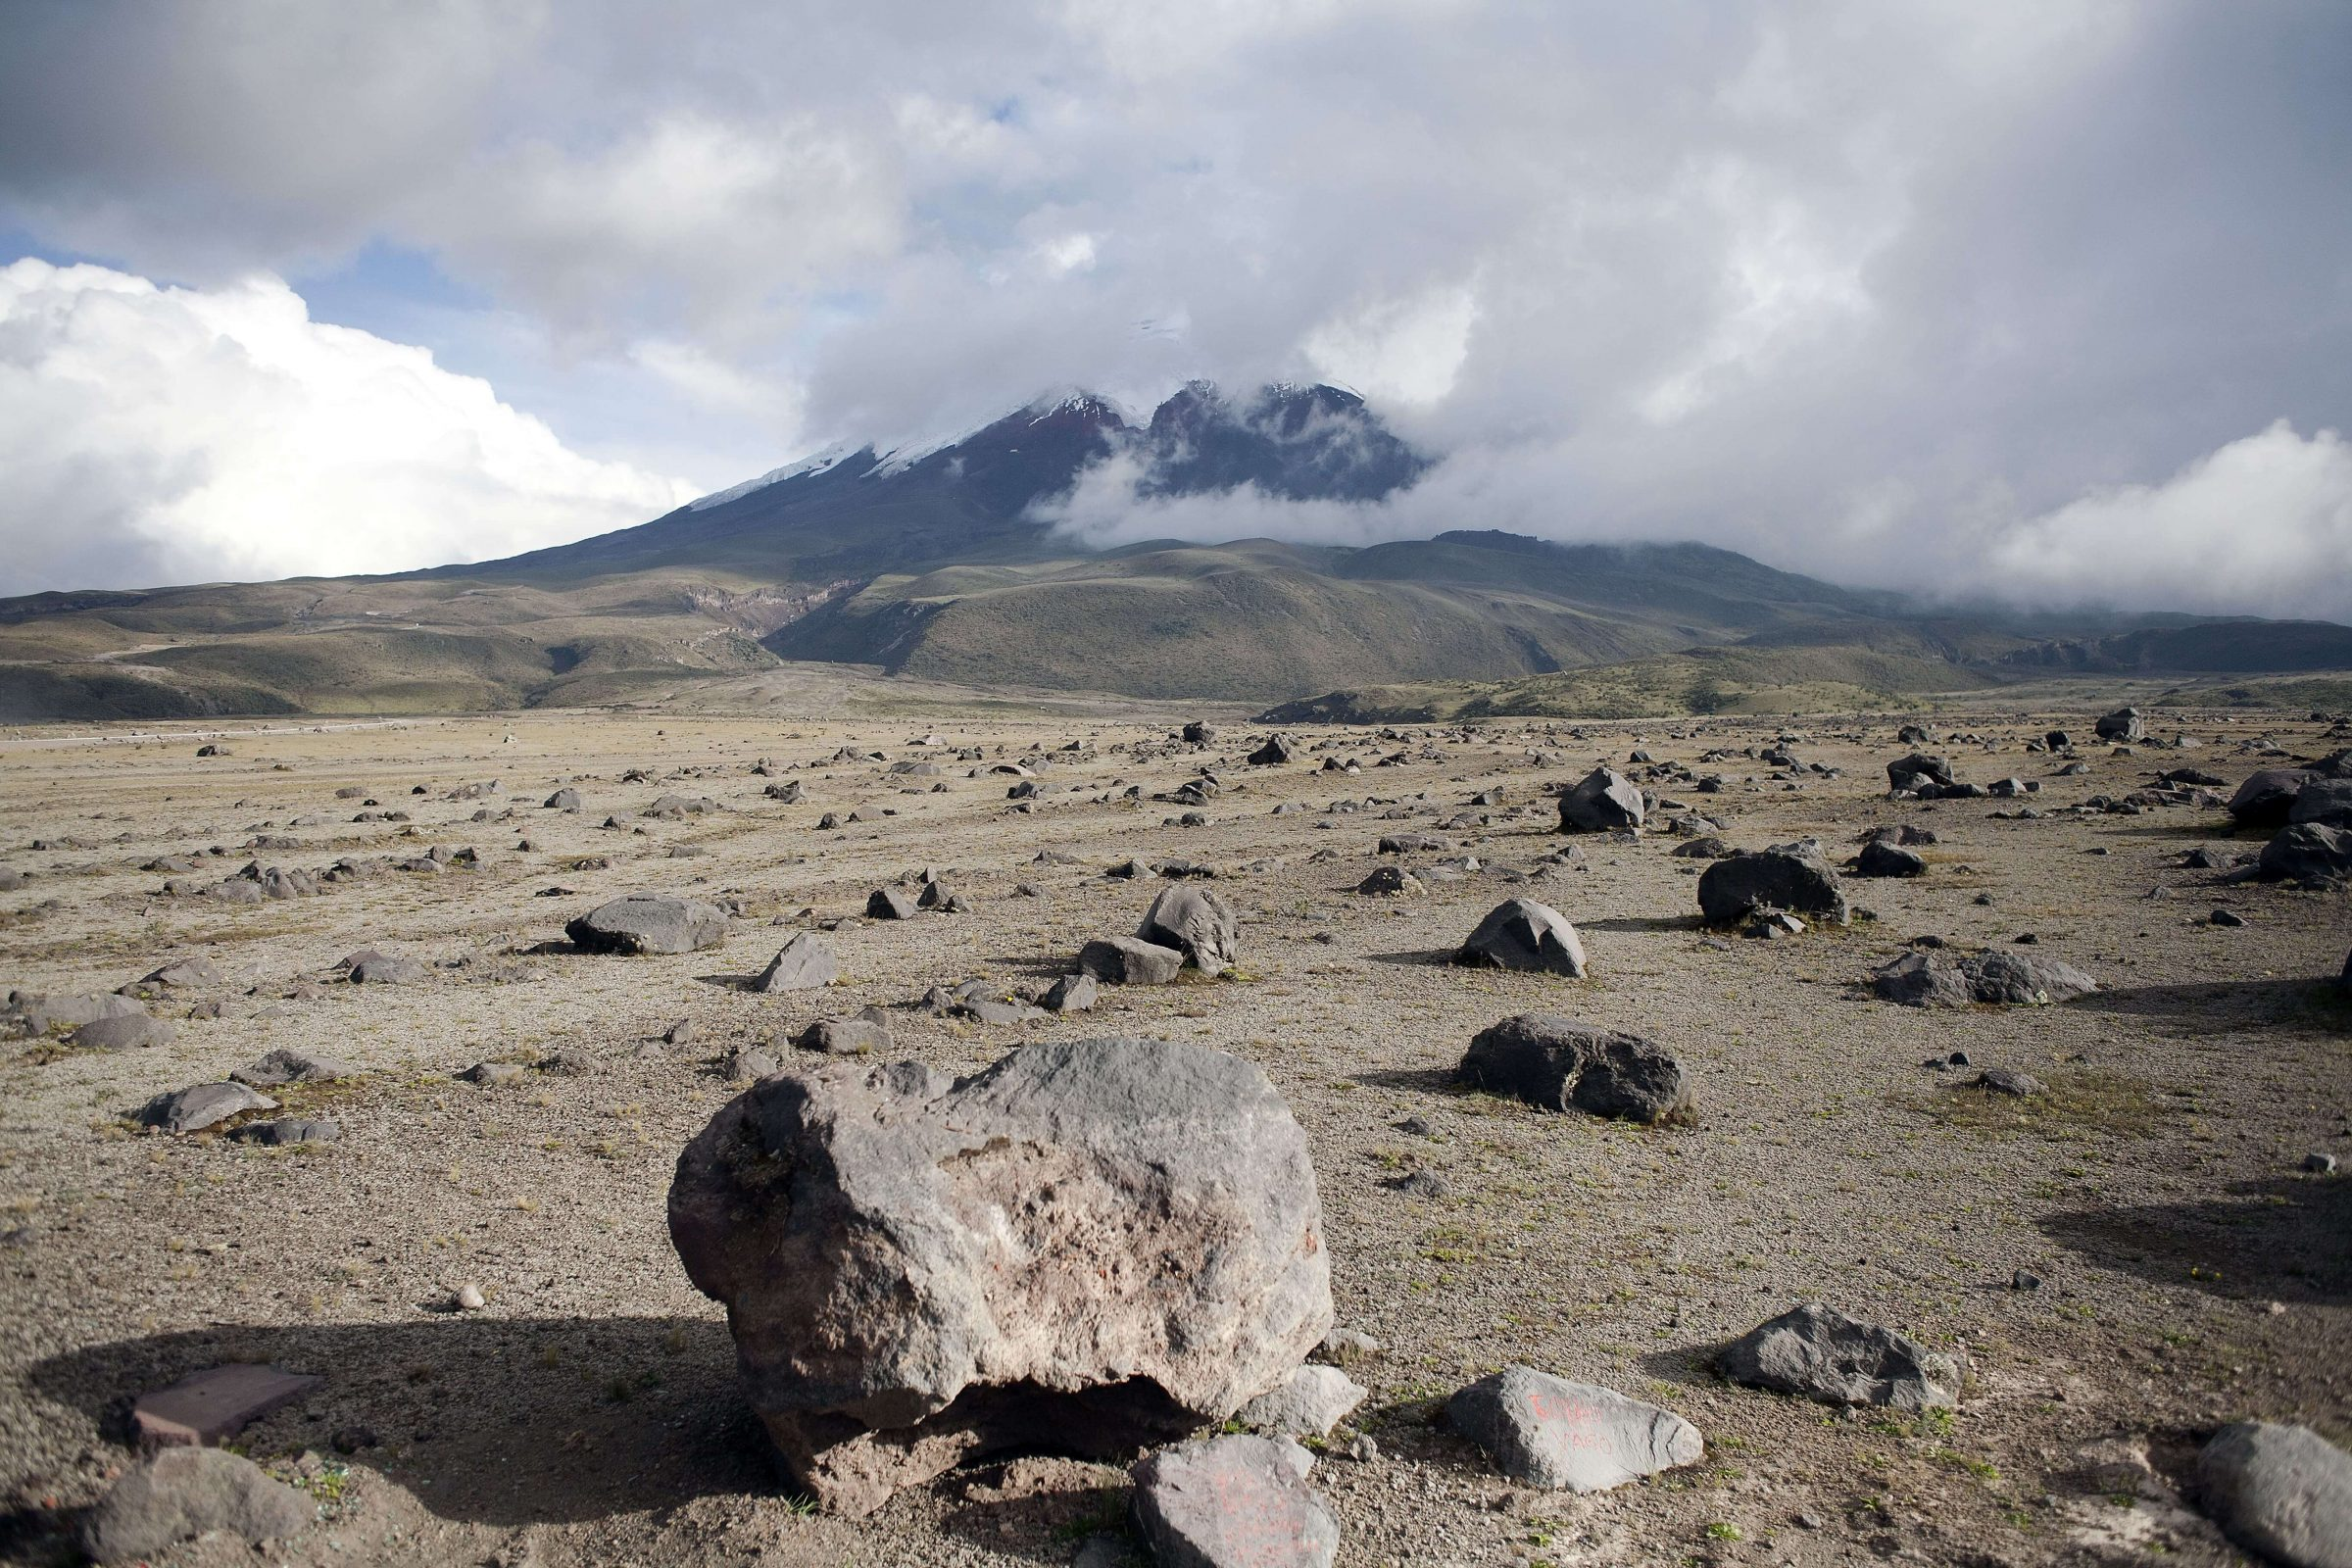 Tips for an amazing adventure in Cotopaxi